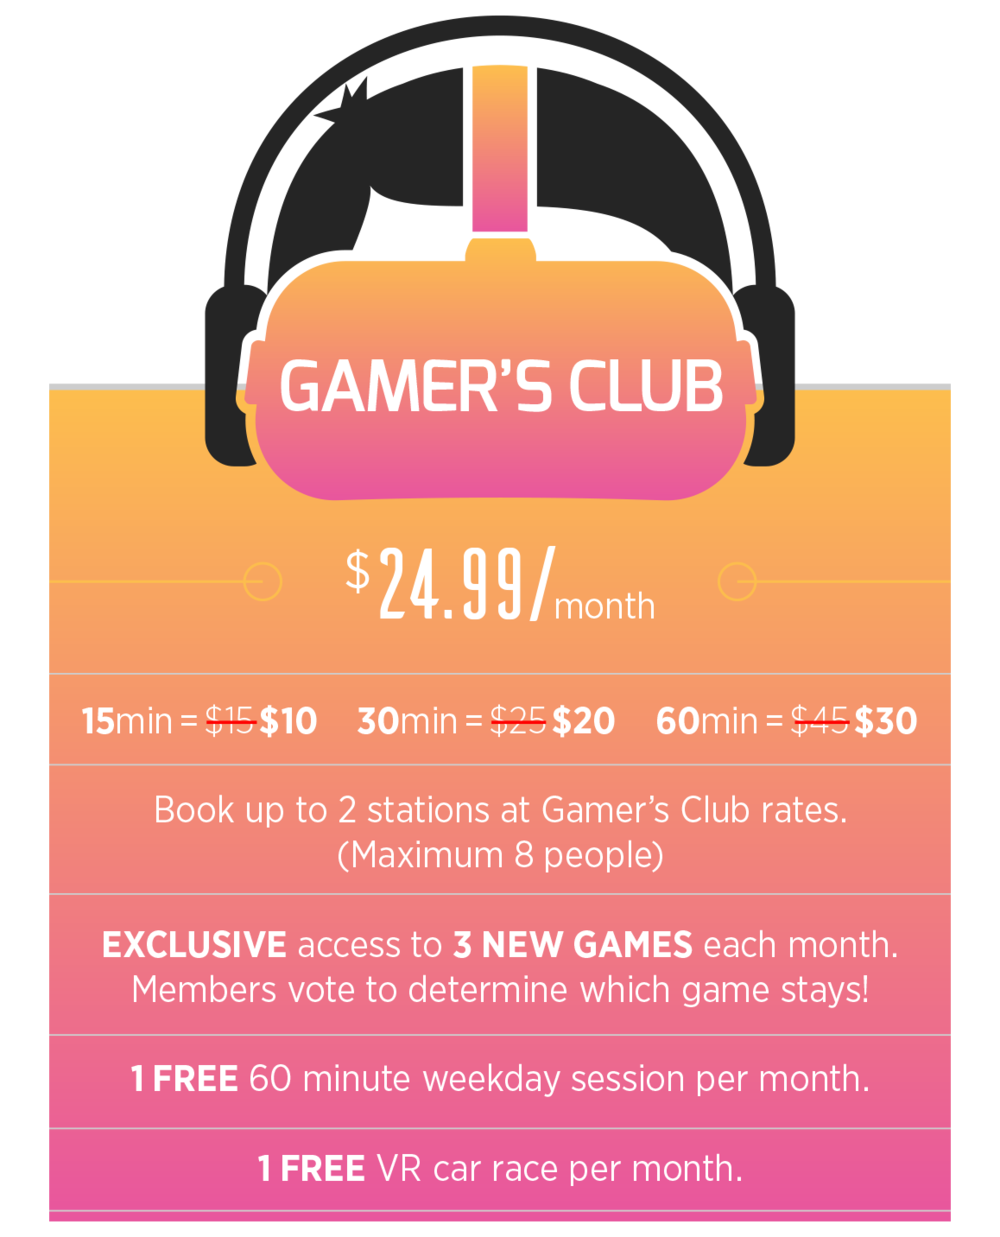 GamersClub-BasicPink.png